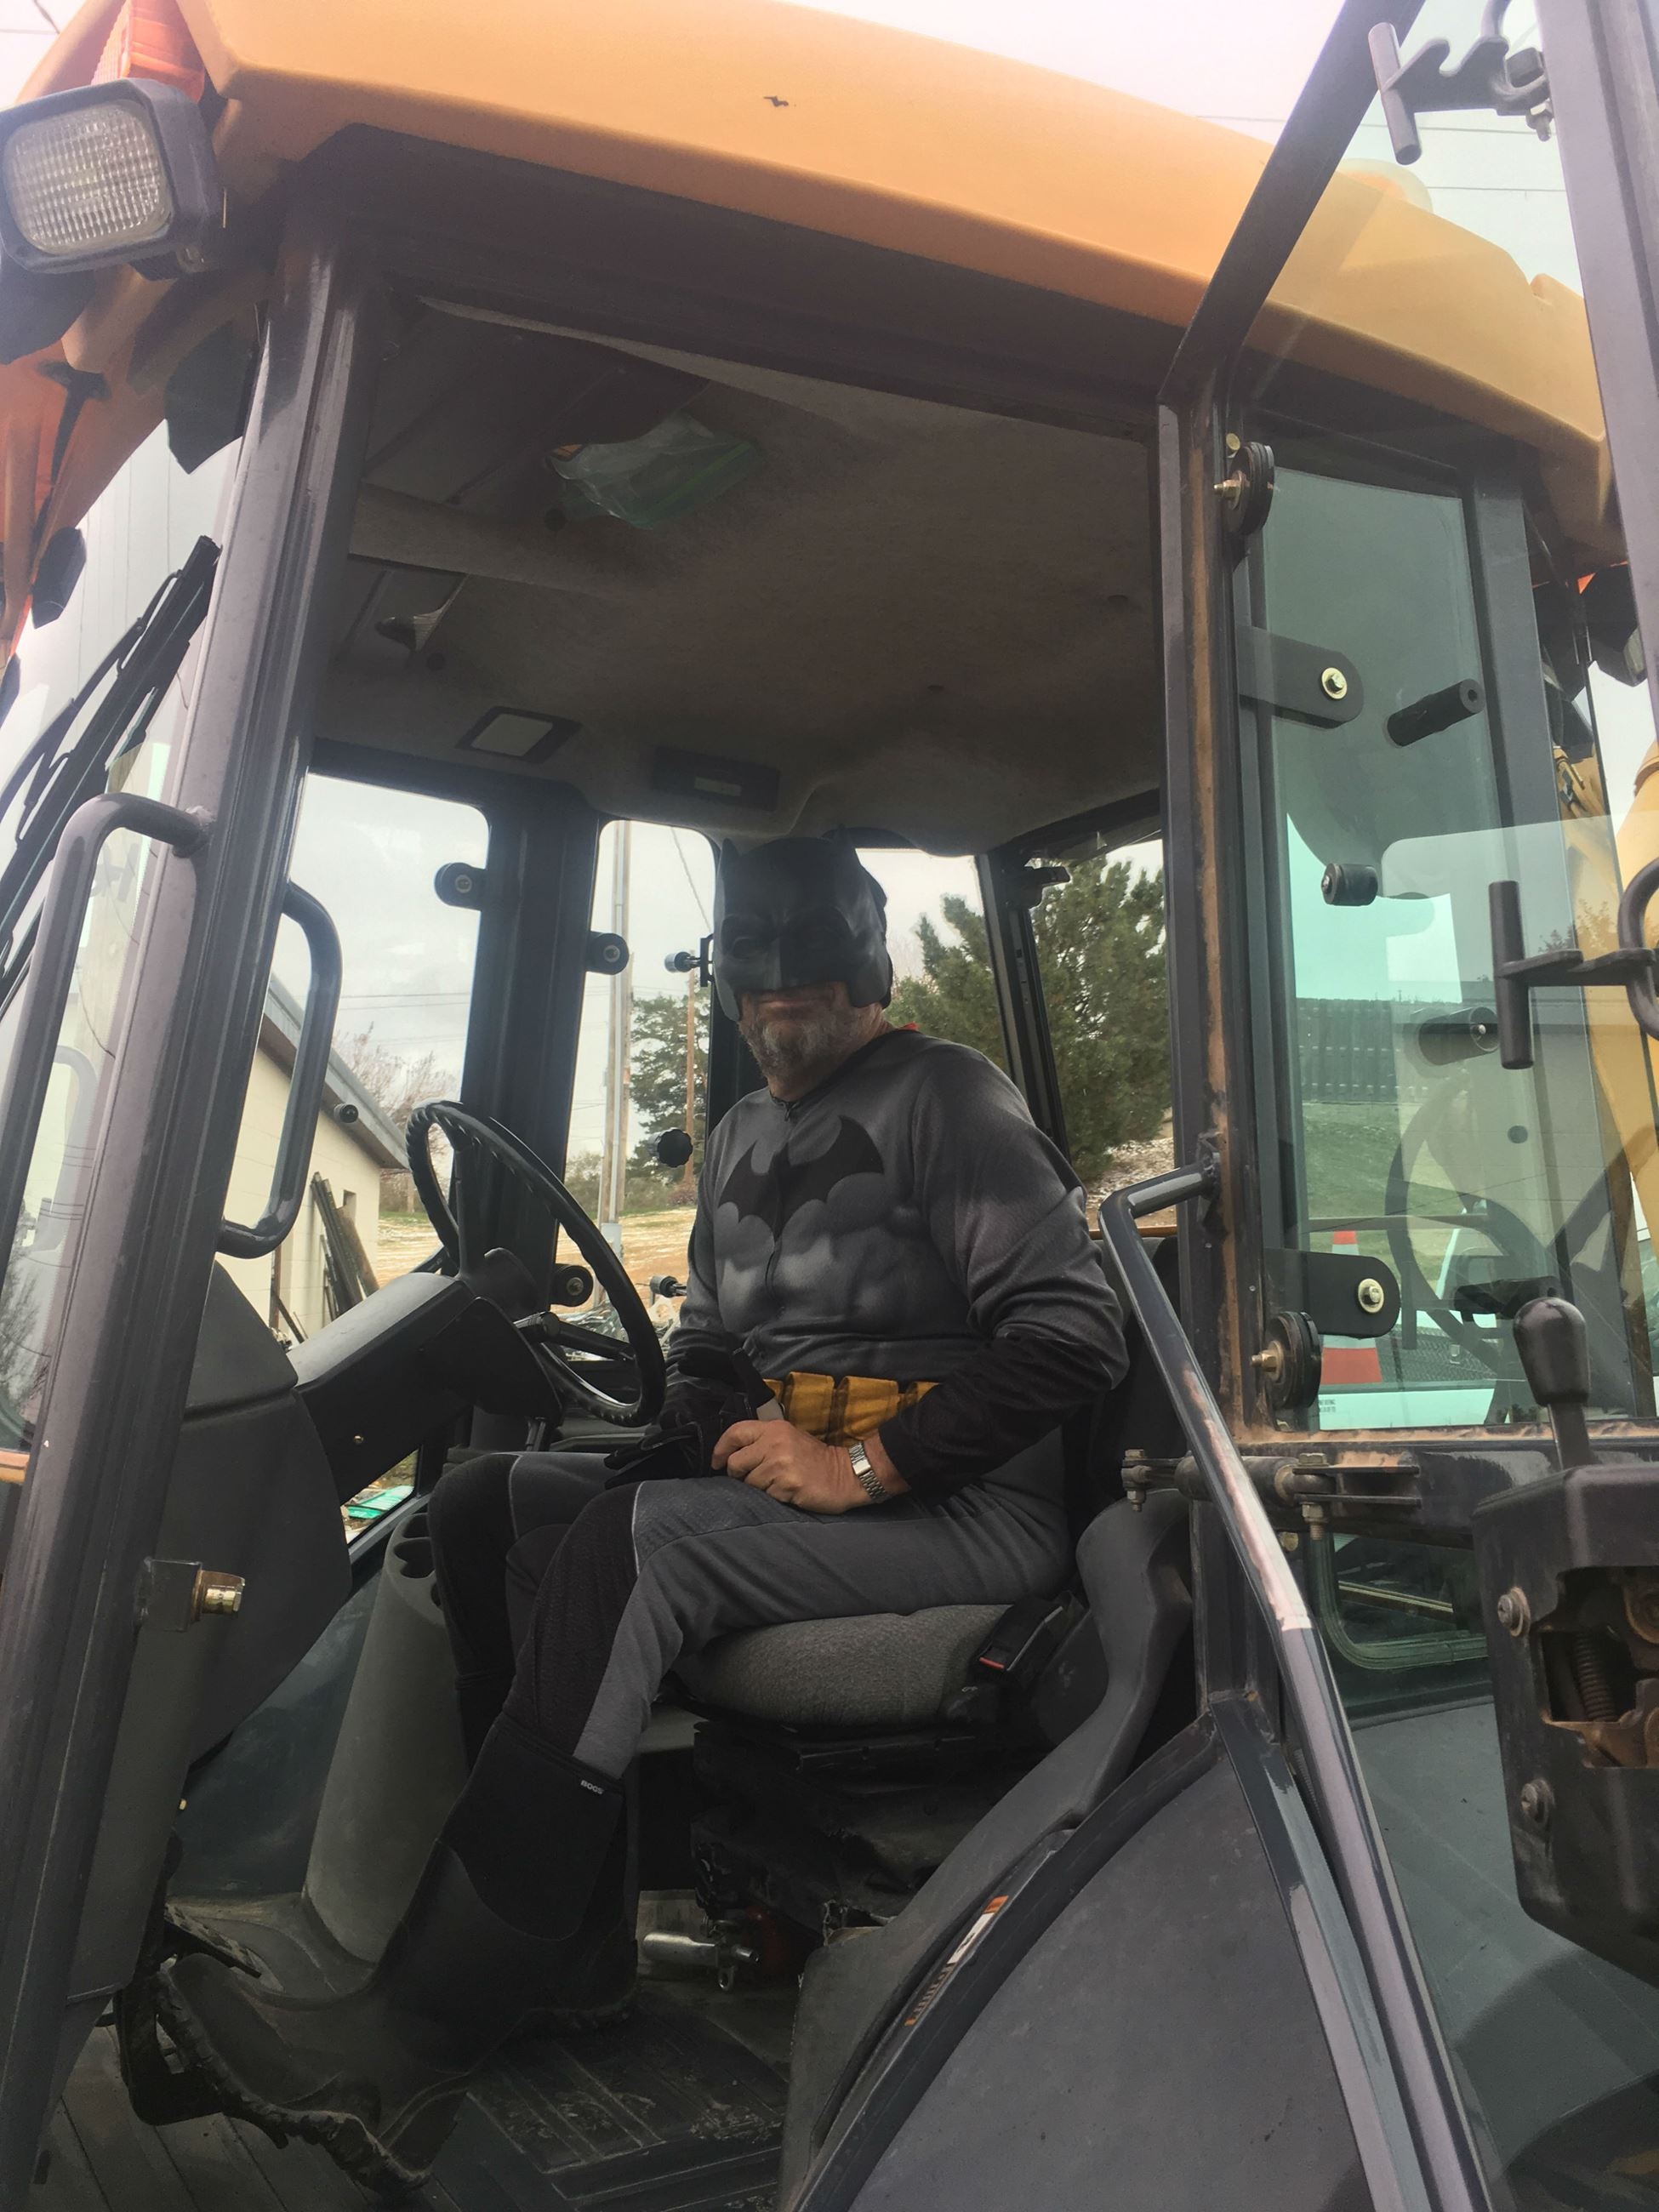 Batman working